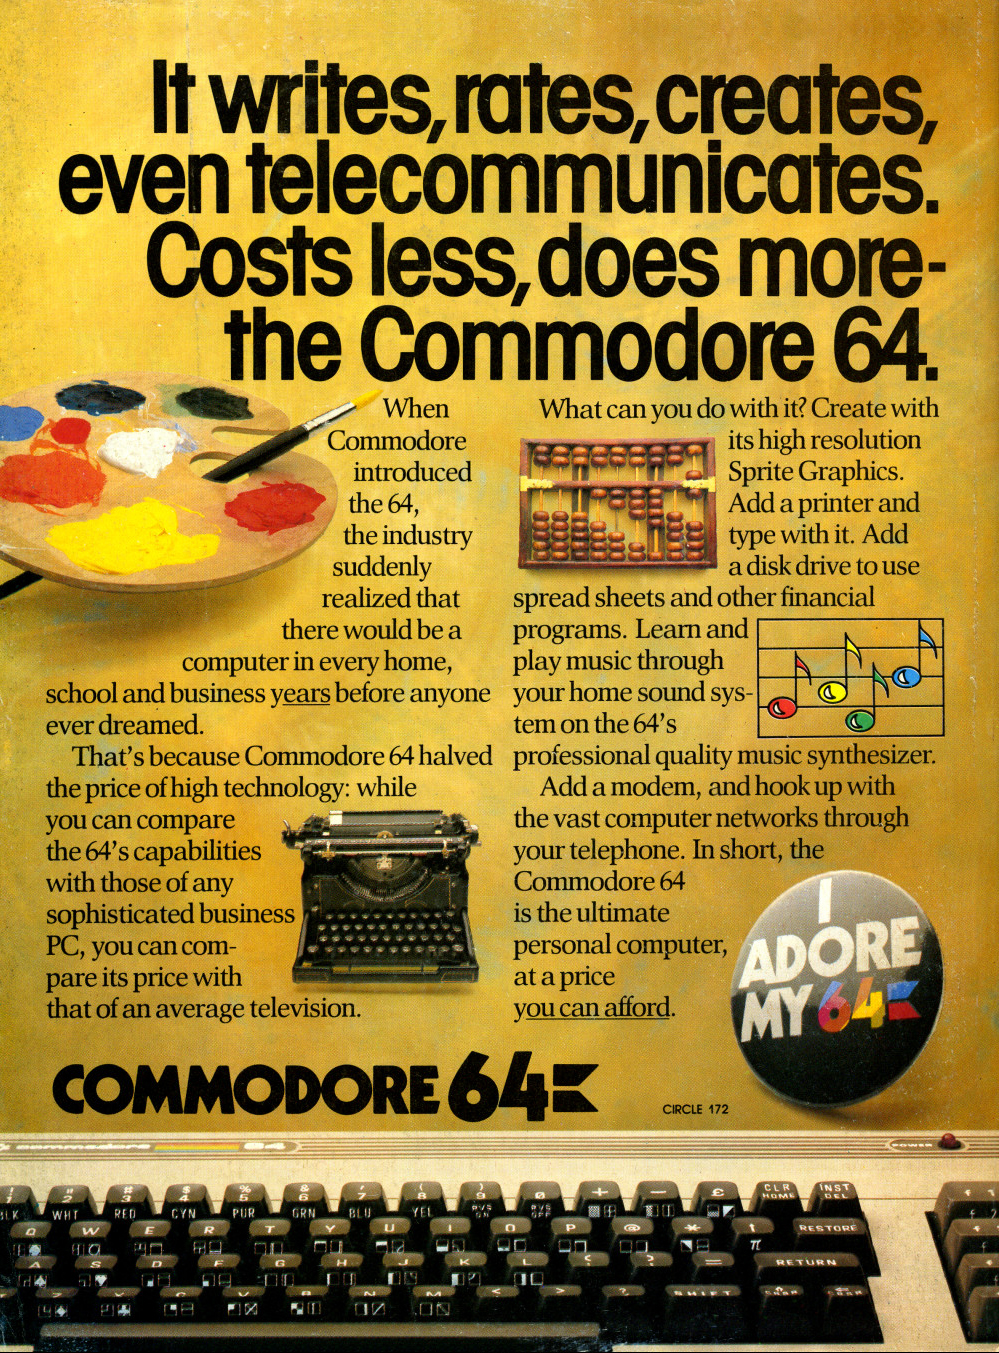 Atari 800 vs  Commodore 64 - The Brief Tale of Two 8-Bit